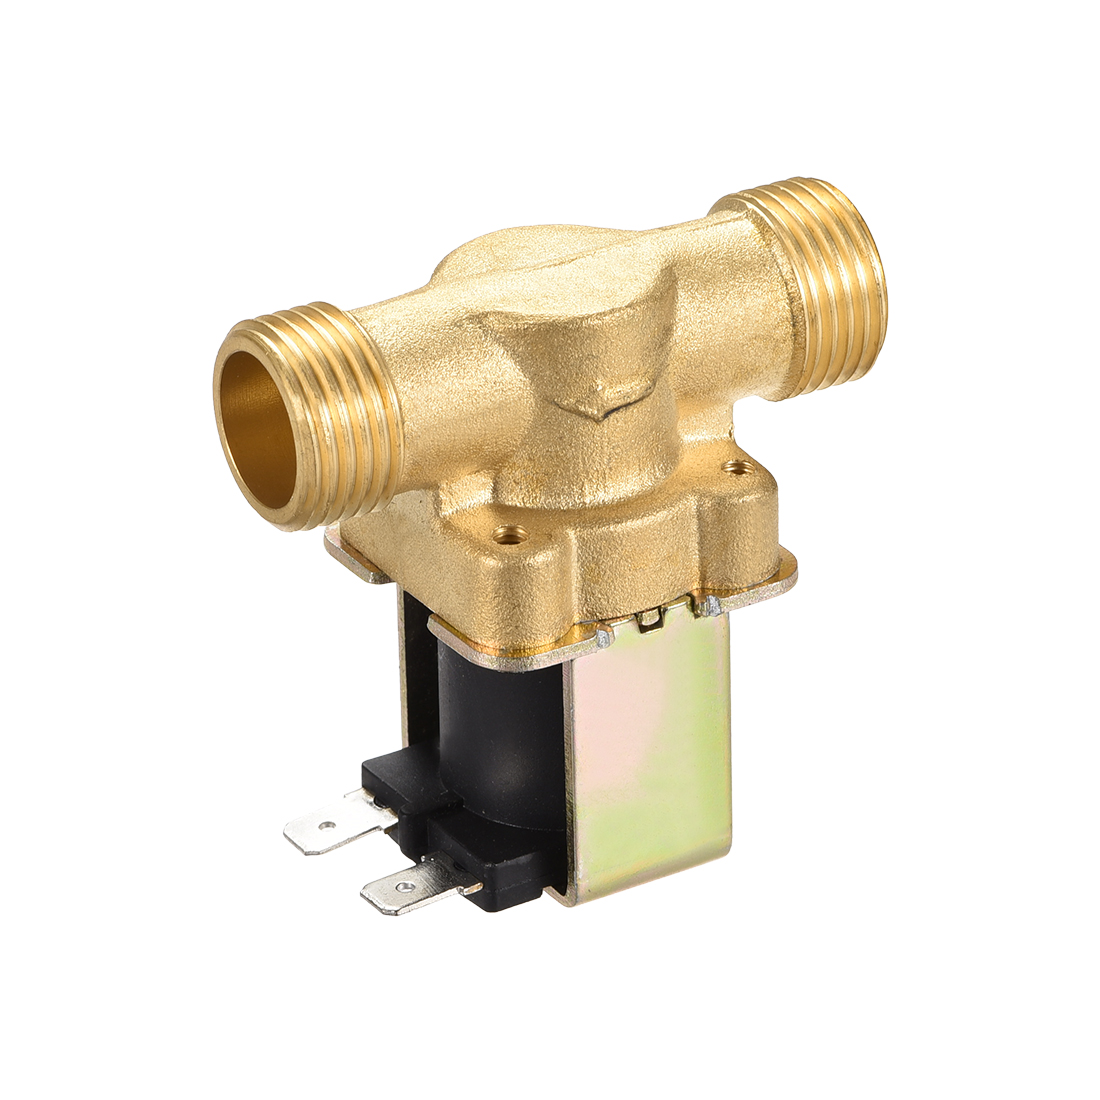 Uxcell DC12V G1/2 Brass Water Electric Solenoid Valve Normally Open N/O Pressure Water Inlet Flow Switch Electric Magnetic Valve